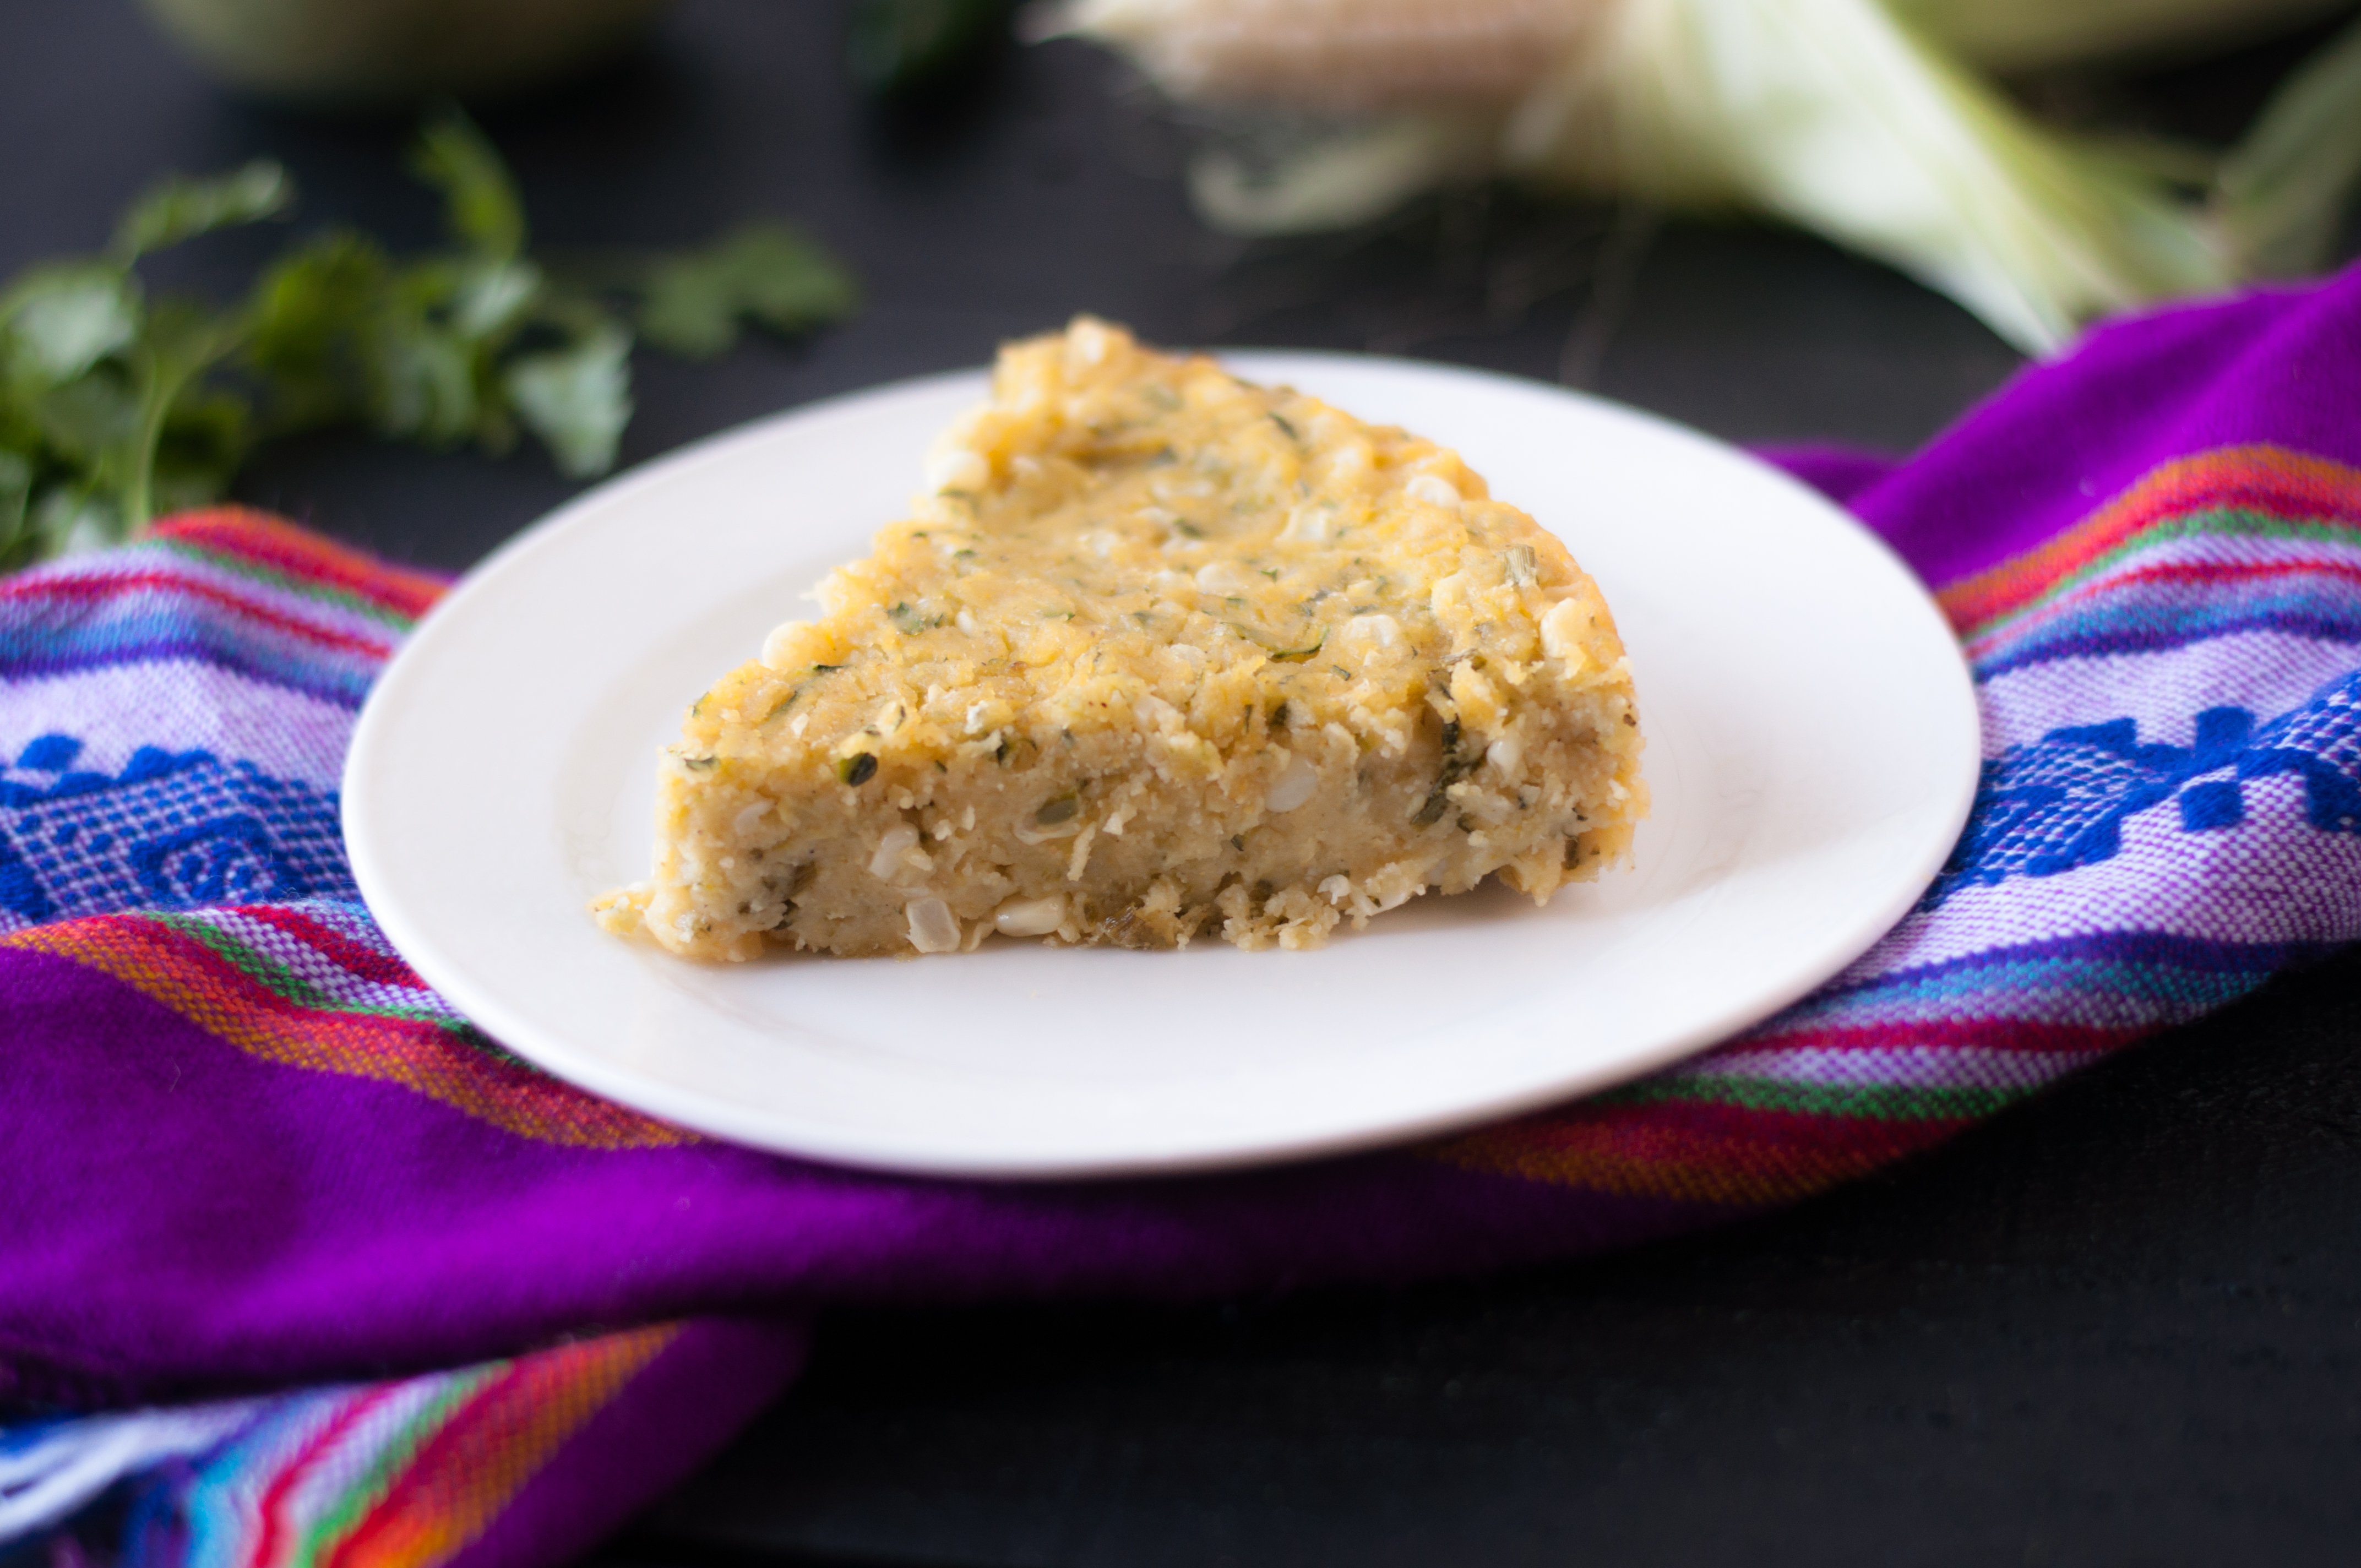 Craving tamales, but don't want to spend a lot of time making them? Why not make a casserole instead! This Zucchini Corn Tamale Casserole steams on the stove just like regular tamales. #veganmexican #tamales